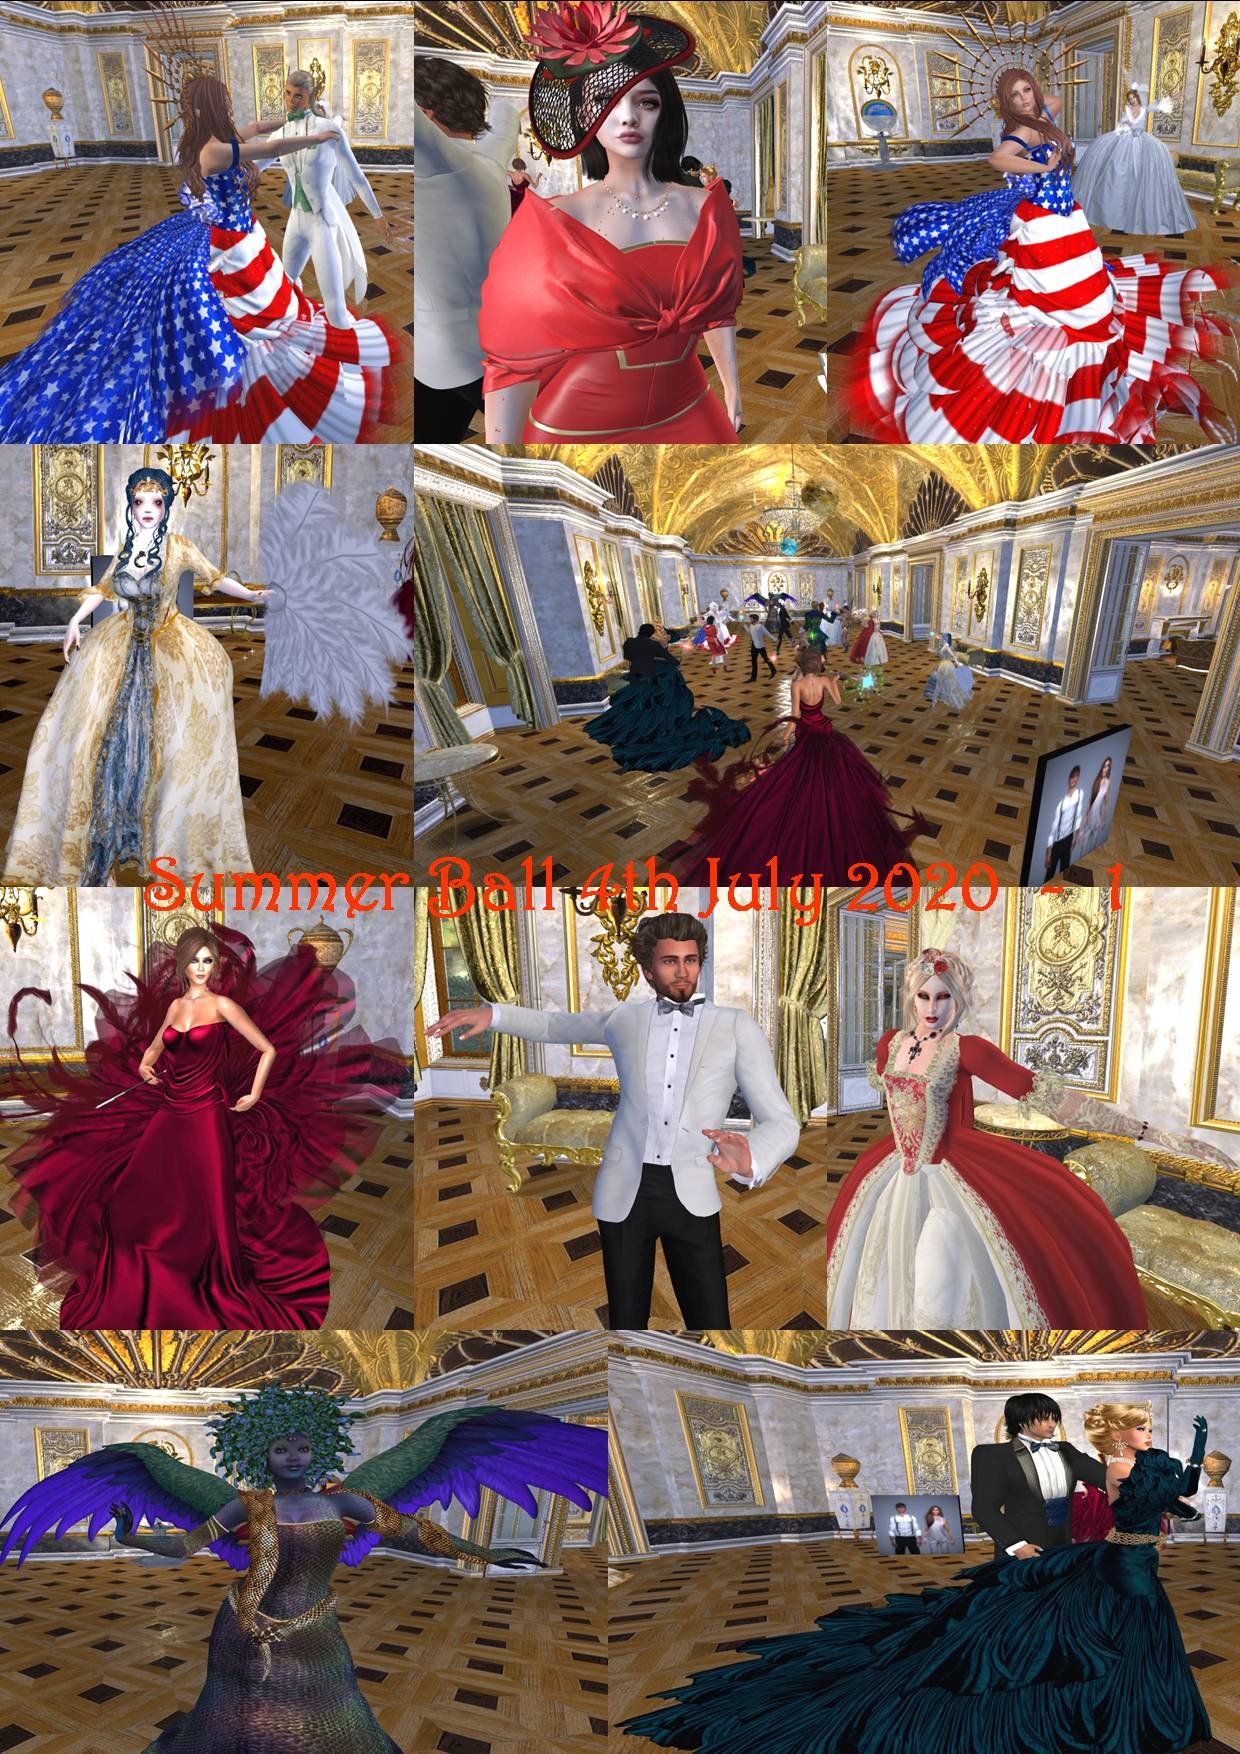 SUMMER BALL 4TH JULY COLLAGE 2020 - 1